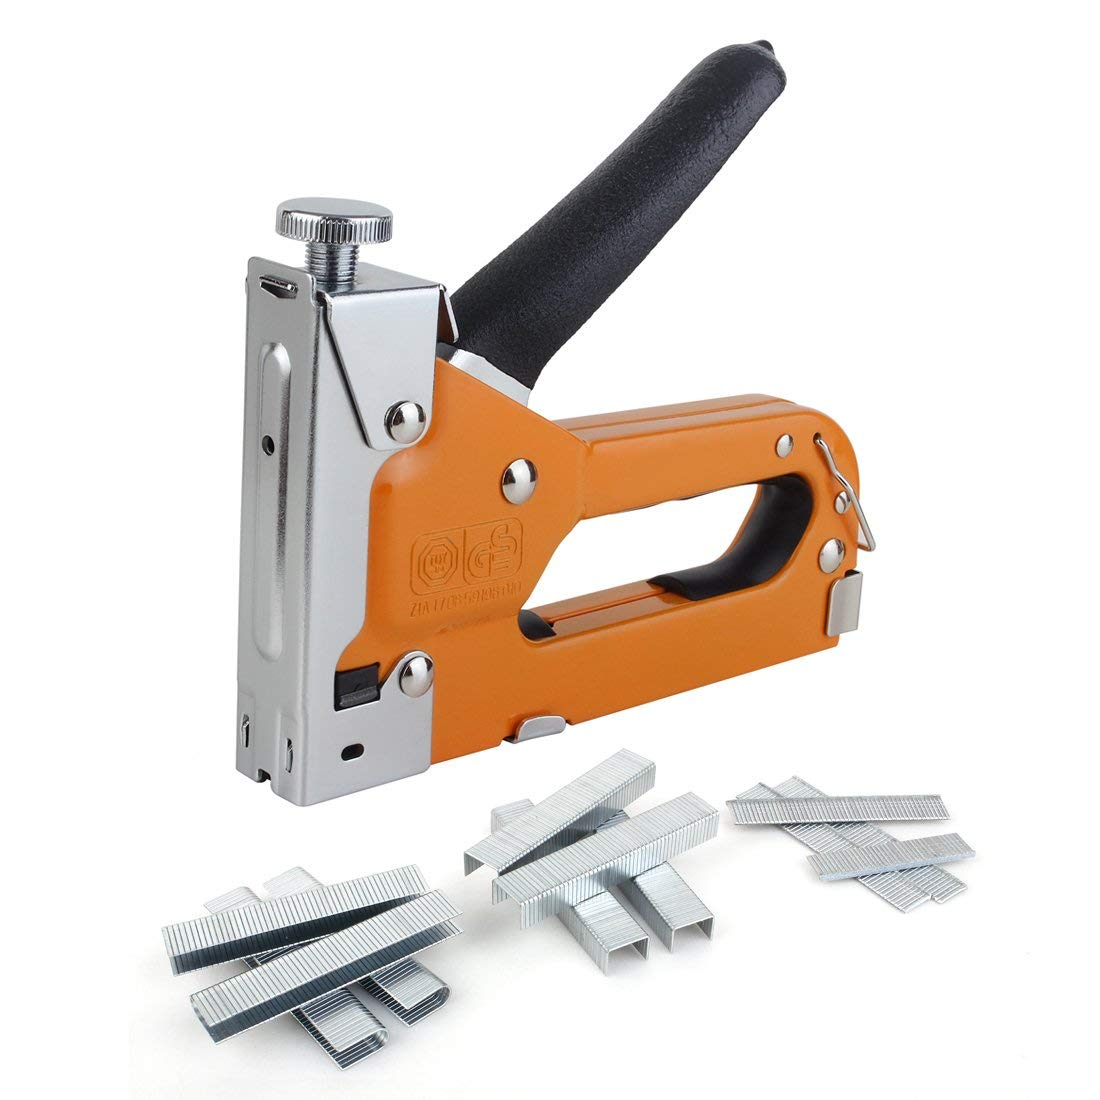 Cheap Electric Staple Gun For Upholstery Find Electric Staple Gun